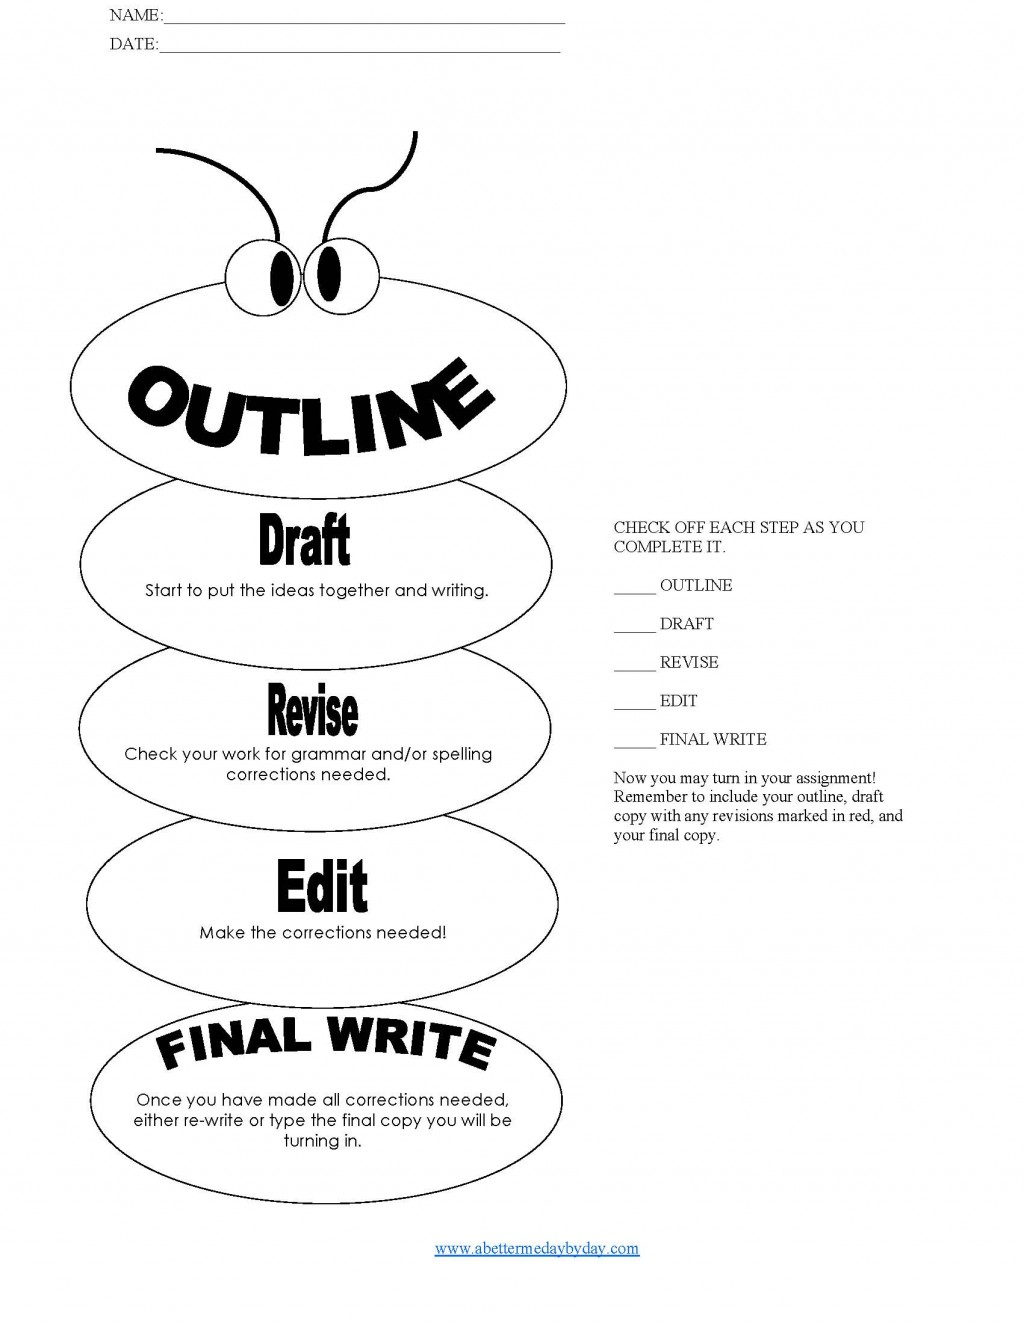 012 Research Paper Hs3 Simple Paragraph Essay Outline Worm Form With Writing Process Check List Page 1 Best Intro Introduction For Large